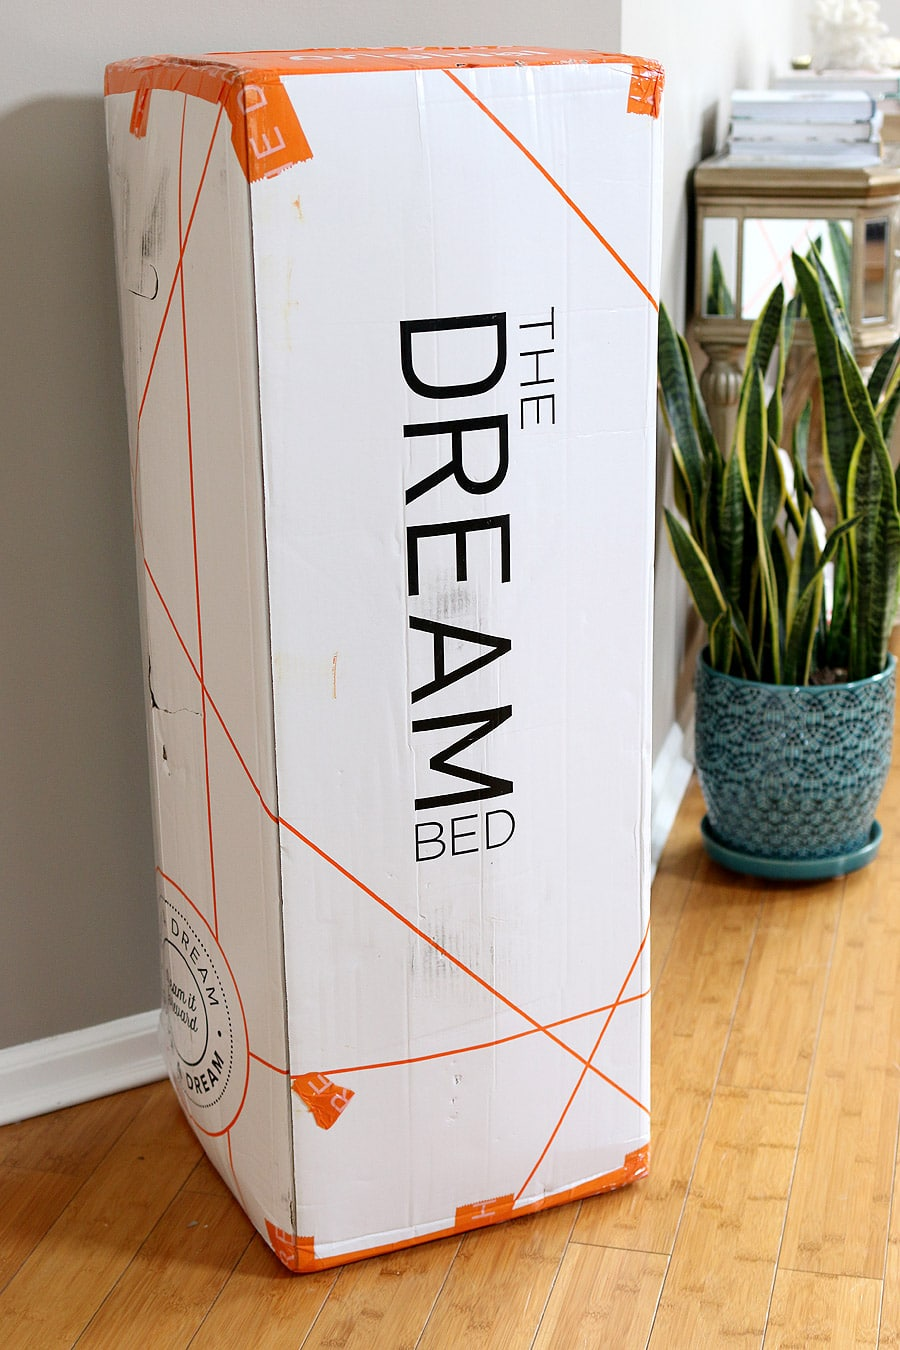 The Dream Bed - a bed in a box